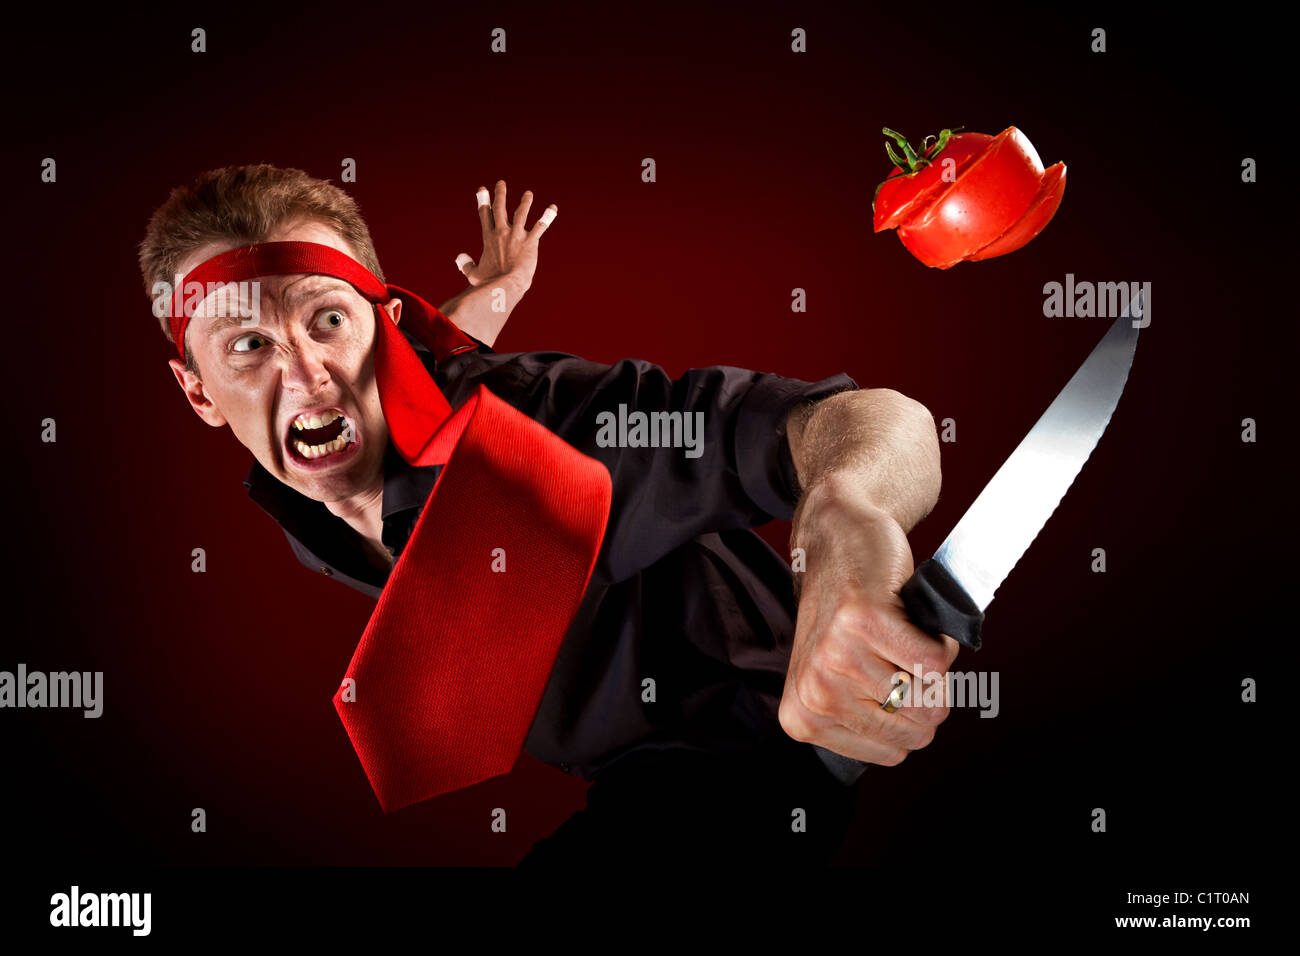 A man wrapped his tie around the head and acts like a ninja a man wrapped his tie around the head and acts like a ninja cutting in pieces a tomato mid air ccuart Image collections